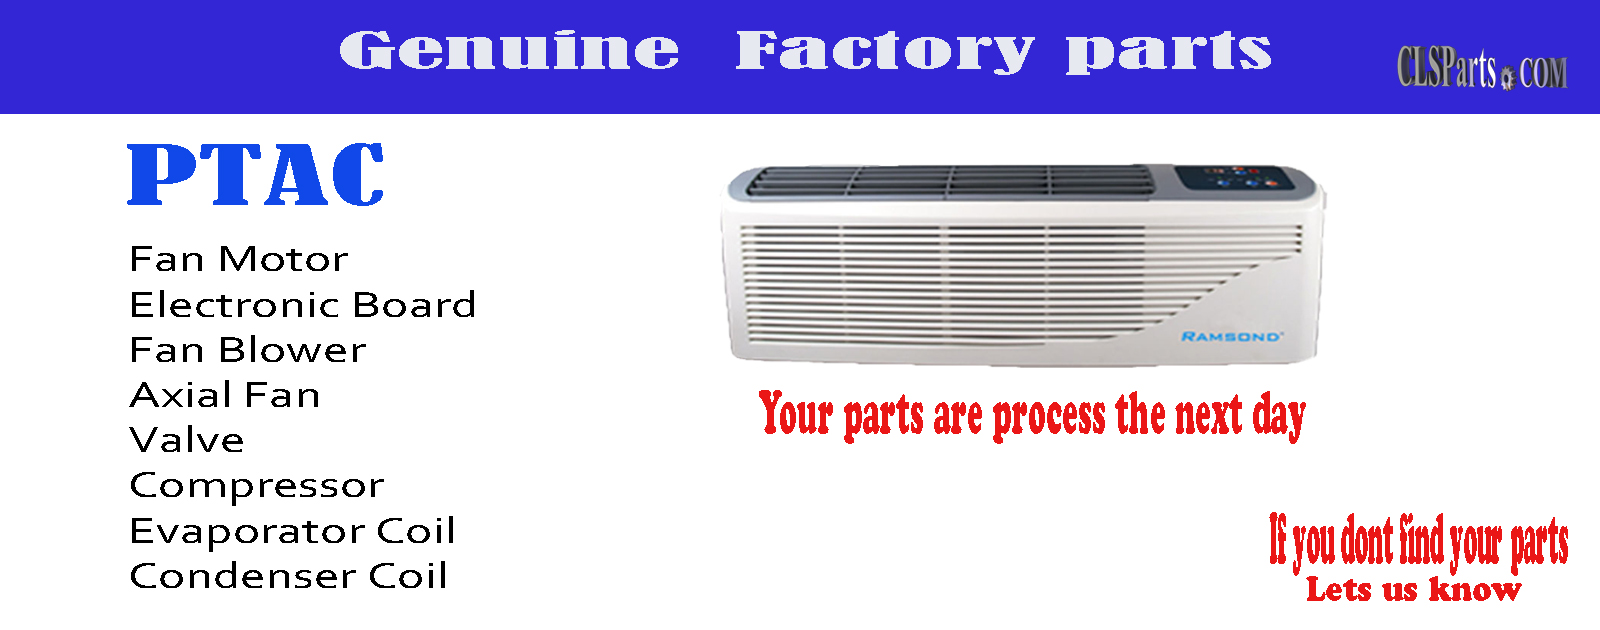 ac-parts-main-page-ptac.jpg